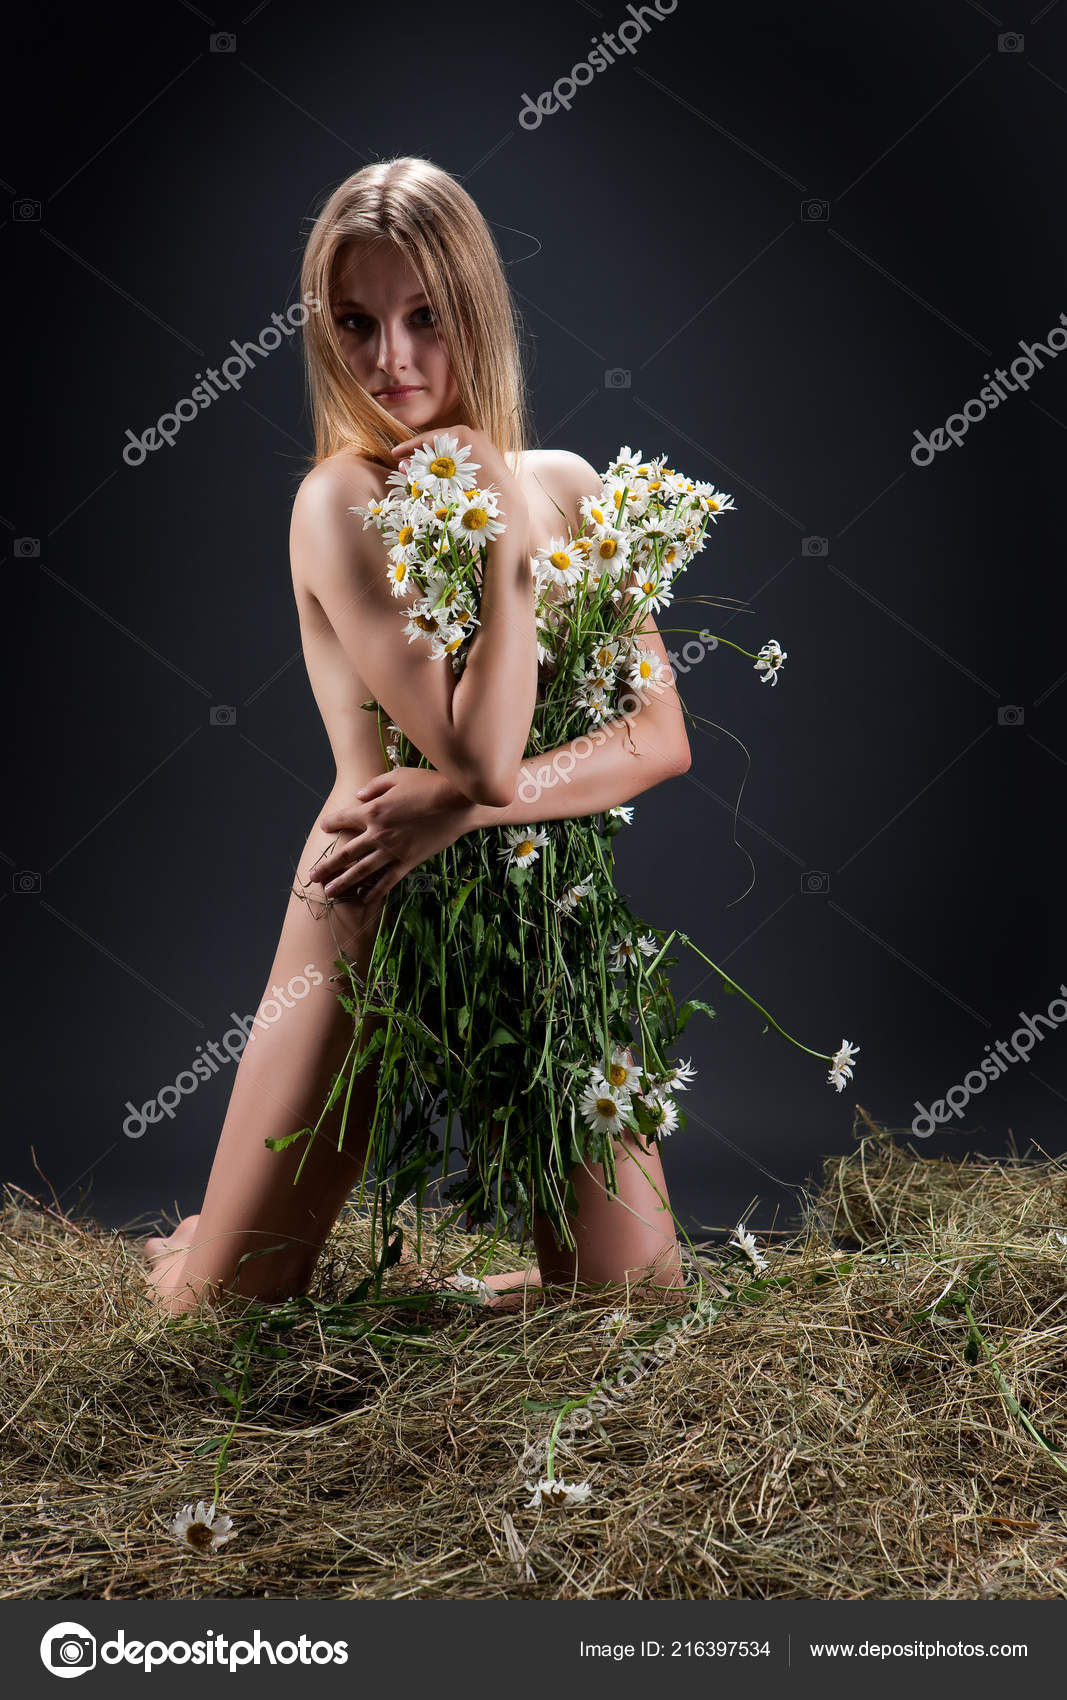 Mine Young nude in hay